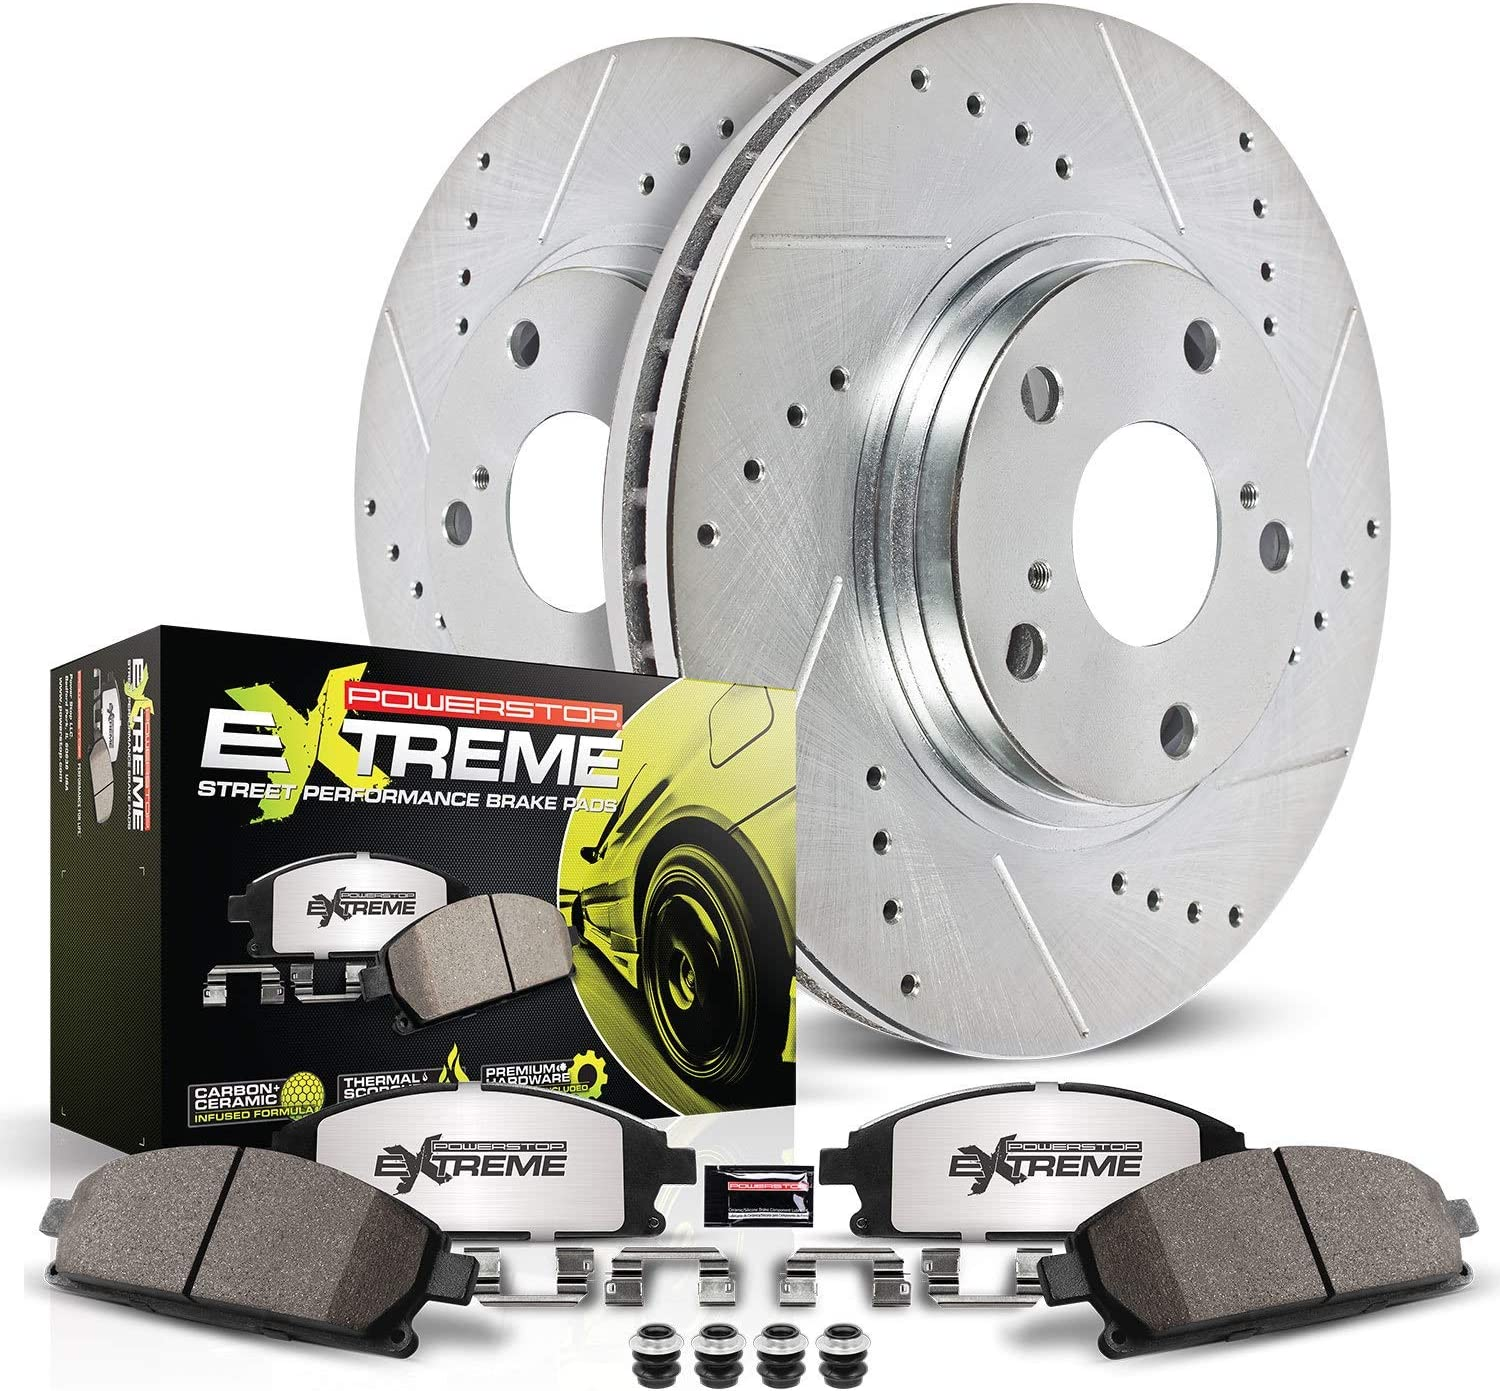 Power Stop K2302-26 Online limited product Max 69% OFF Front Z26 Carbon with Brake Fiber Pads Drill